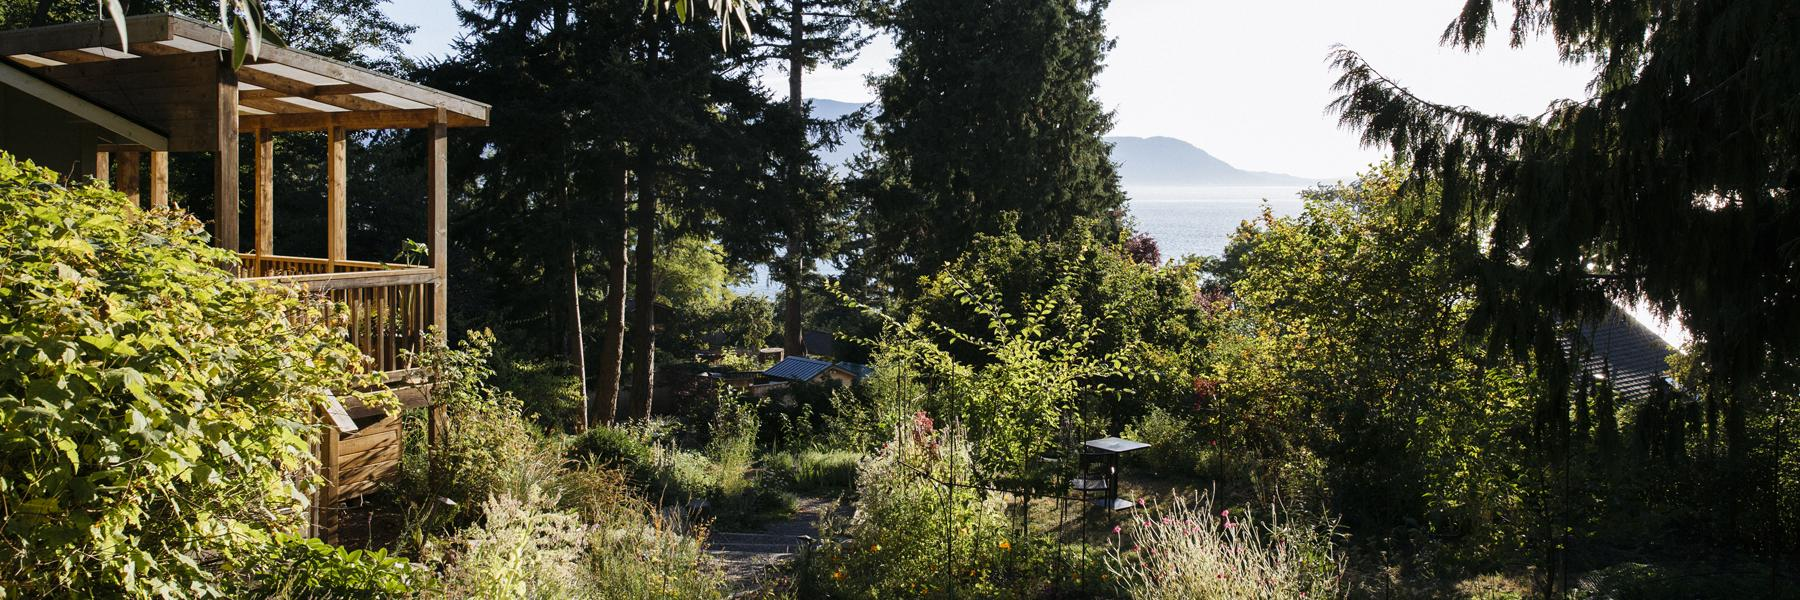 Accommodations at the Willows Inn on Lummi Island